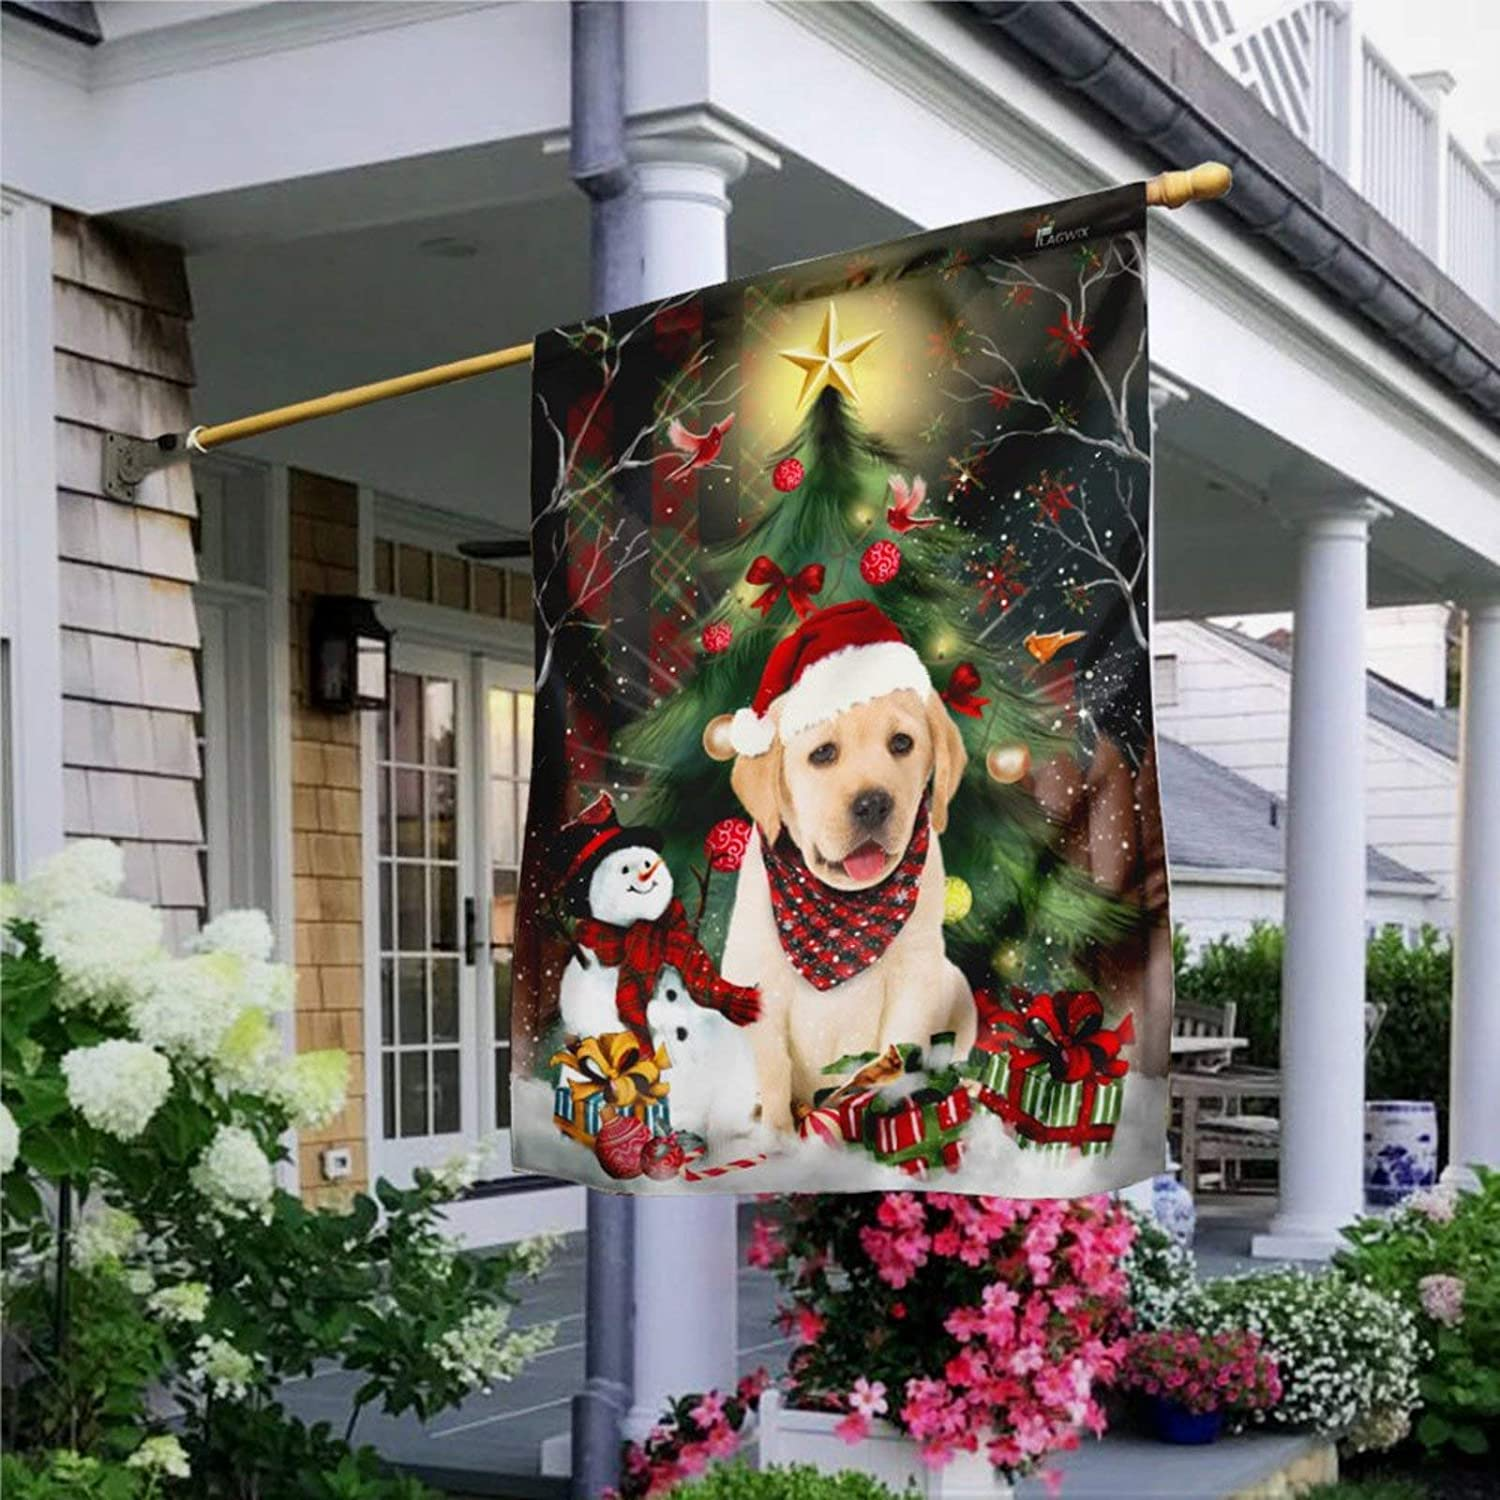 BYRON HOYLE Golden Retriever Christmas Garden Flag Decorative Holiday Seasonal Outdoor Weather Resistant Double Sided Print Farmhouse Flag Yard Patio Lawn Garden Decoration 28 x 40 Inch